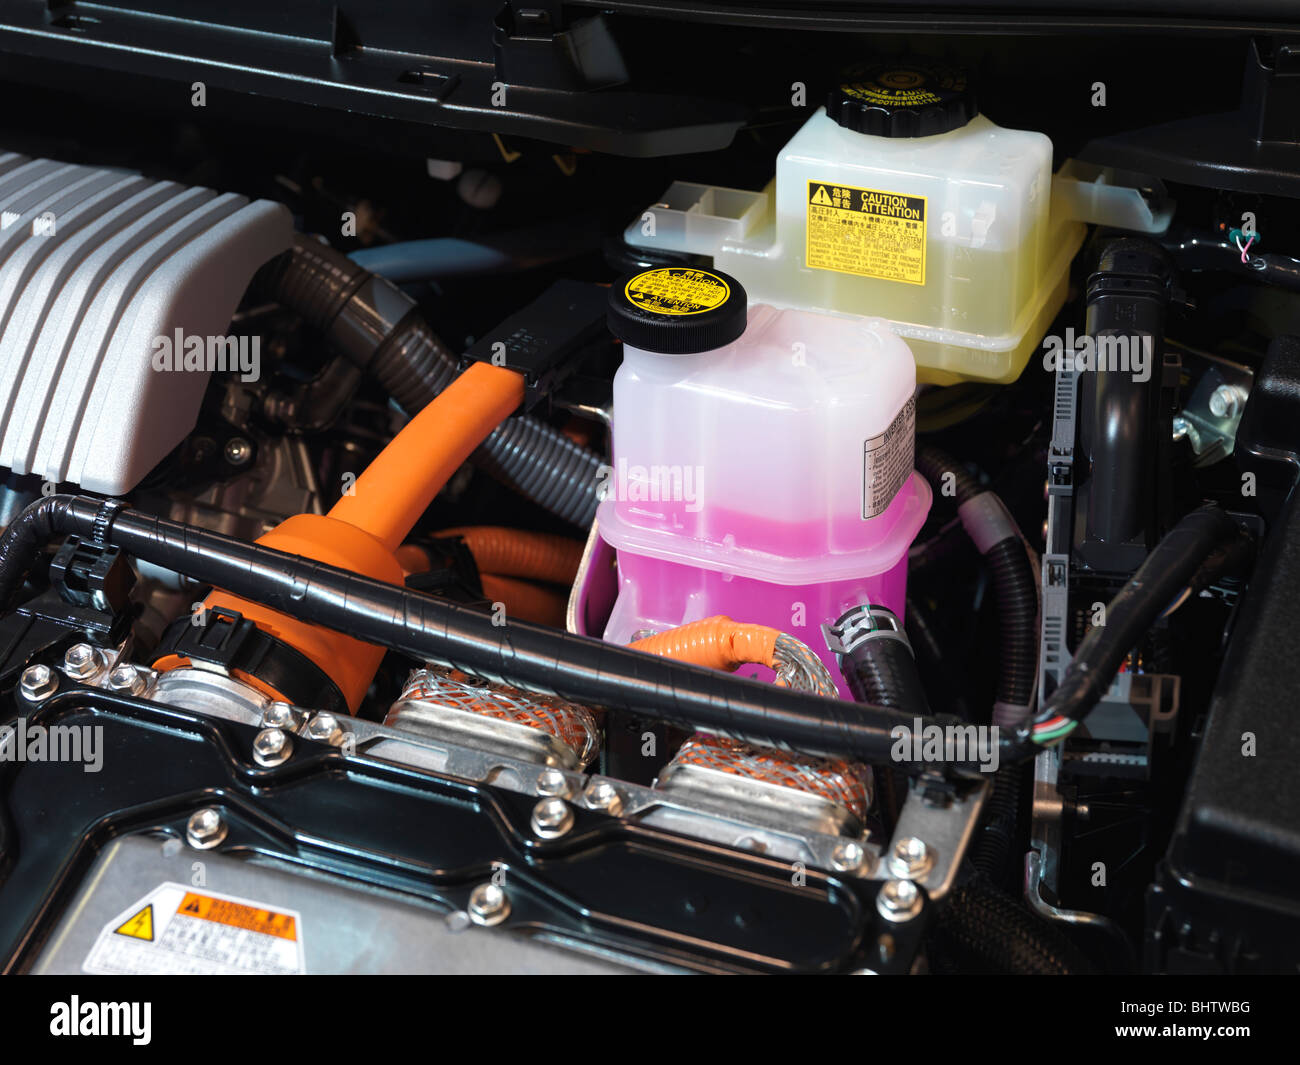 2010 toyota prius hybrid engine brake fluid and inverter coolant stock photo royalty free image. Black Bedroom Furniture Sets. Home Design Ideas